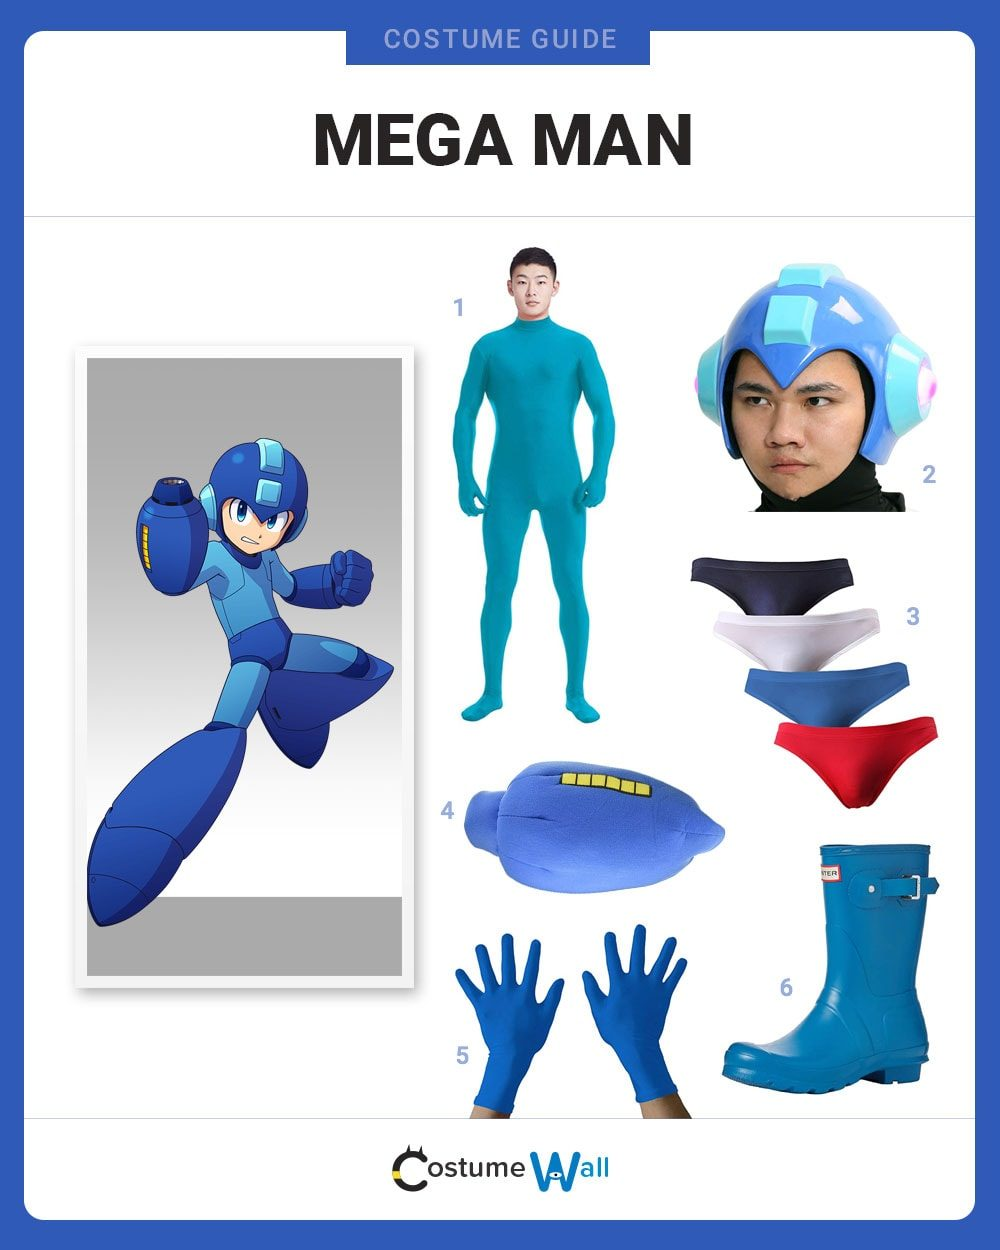 Mega Man Costume Guide